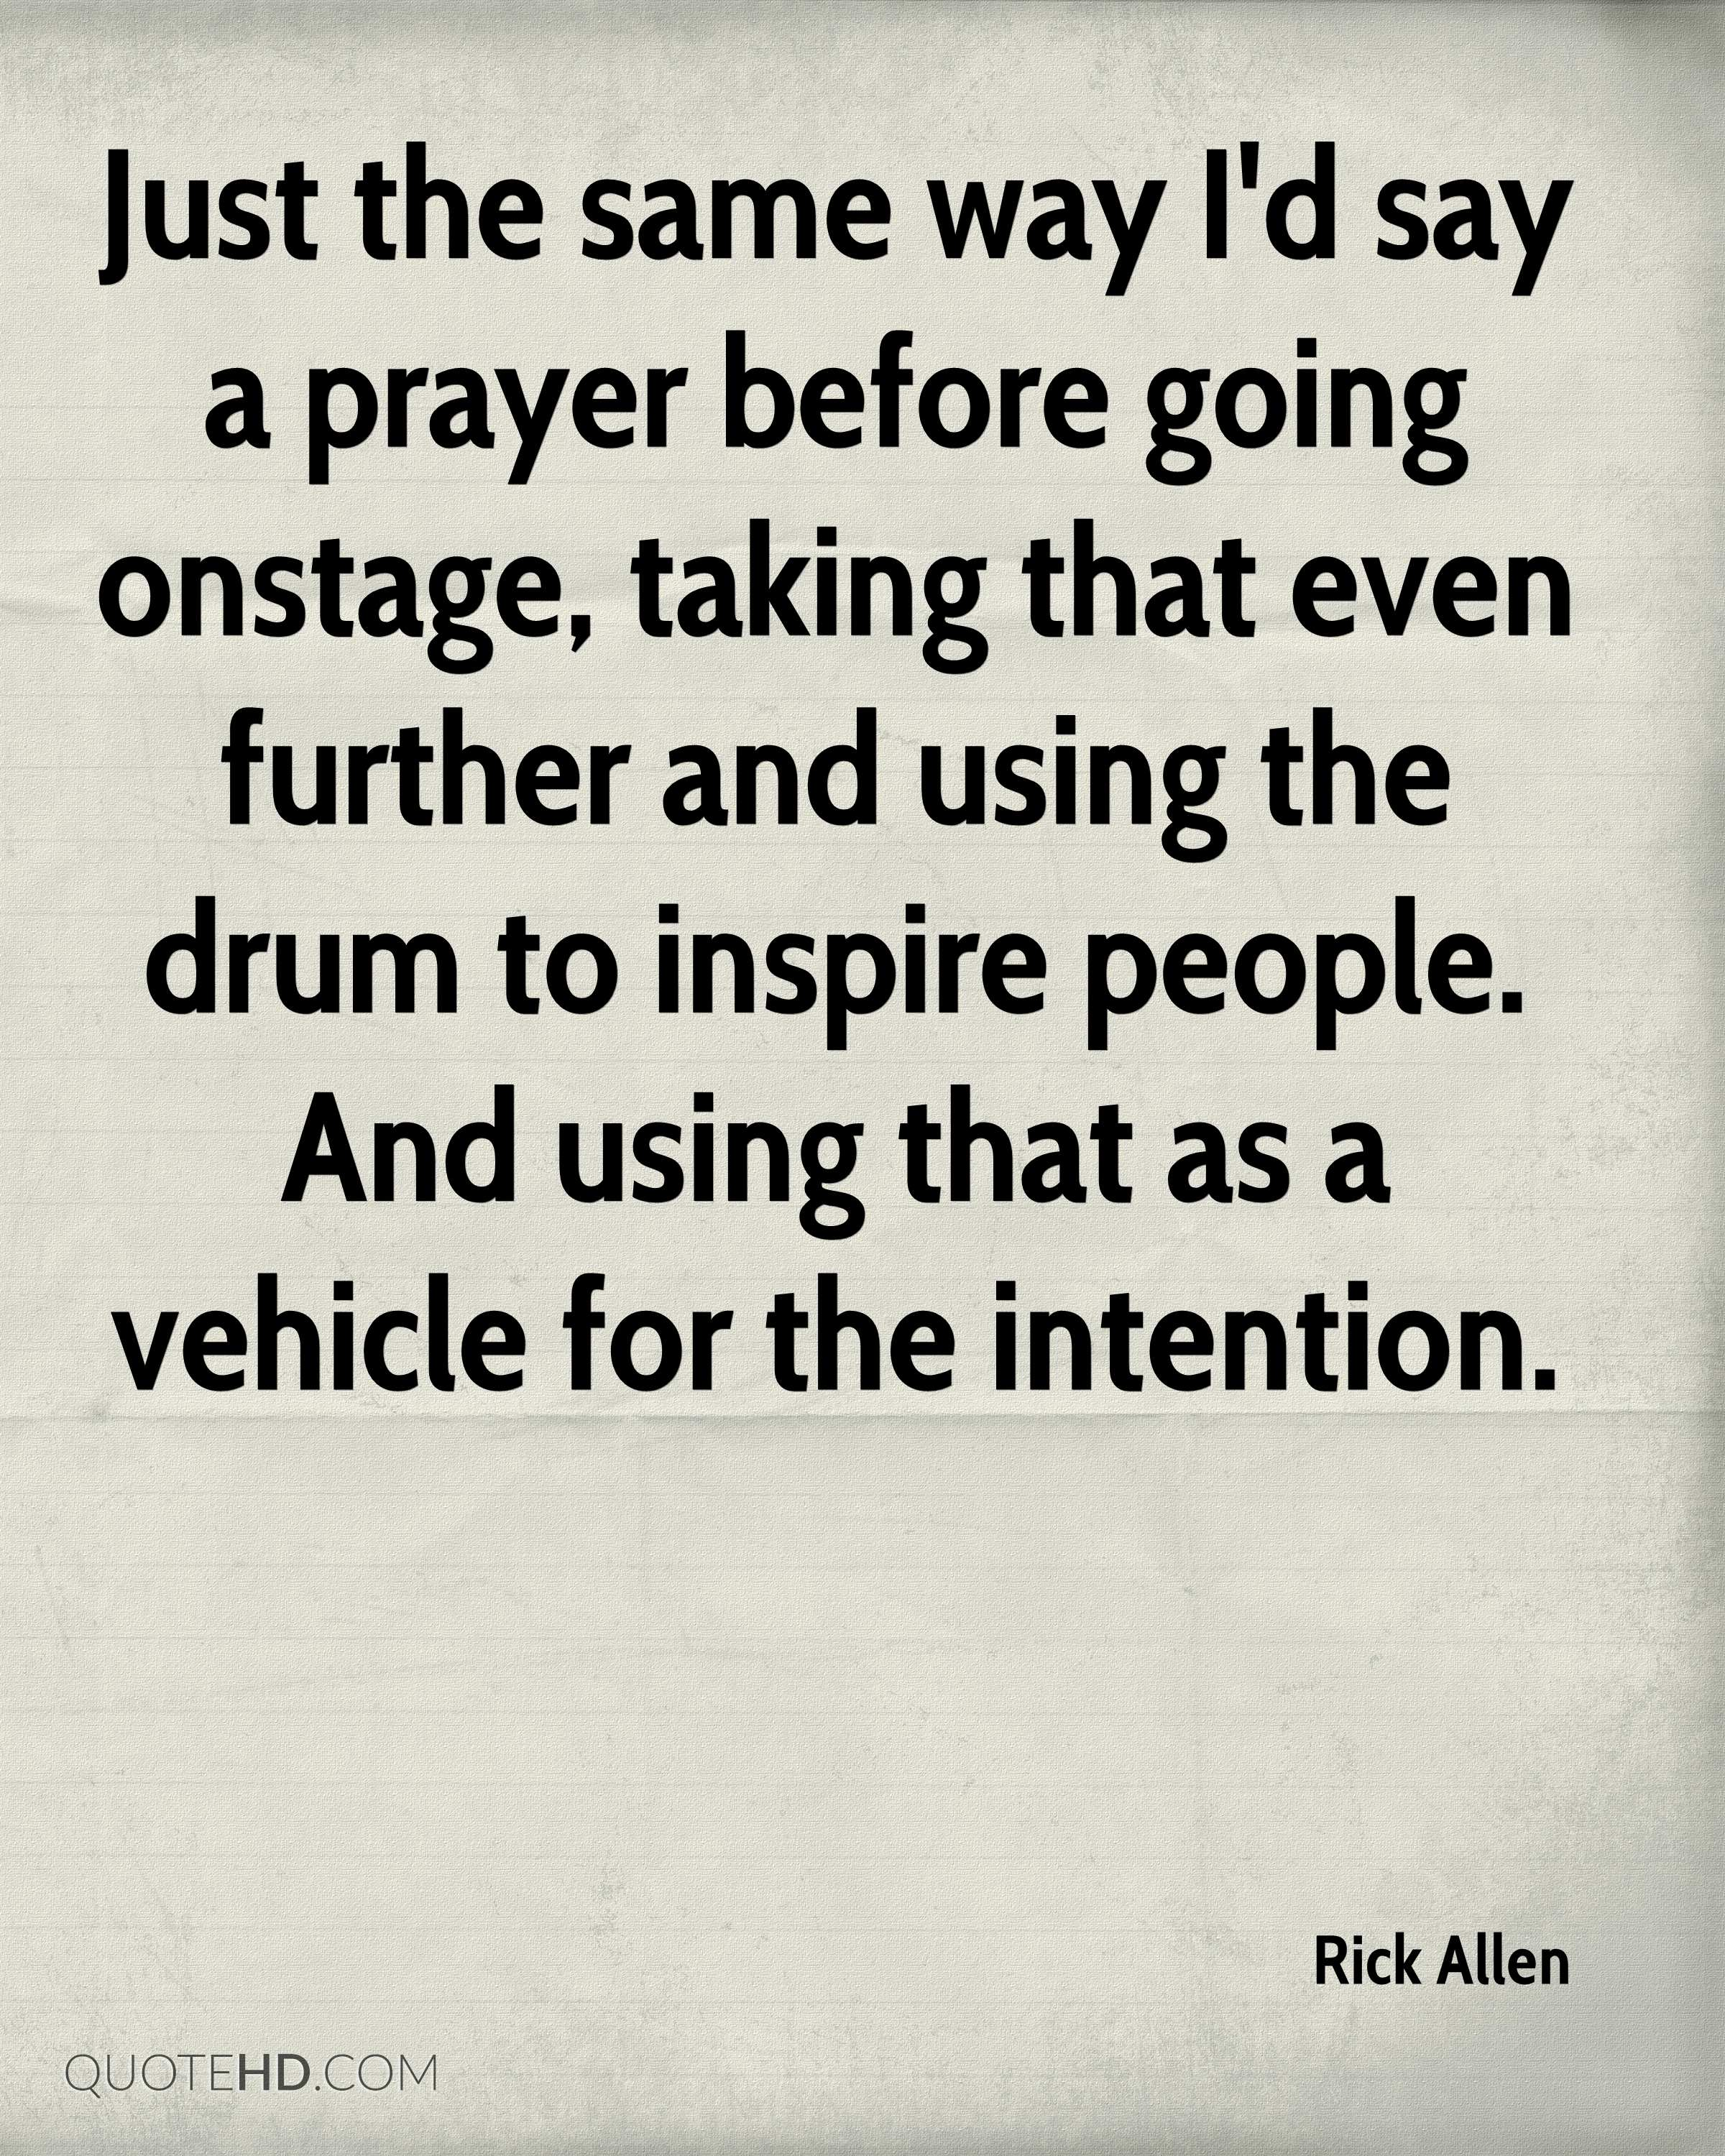 Just the same way I'd say a prayer before going onstage, taking that even further and using the drum to inspire people. And using that as a vehicle for the intention.